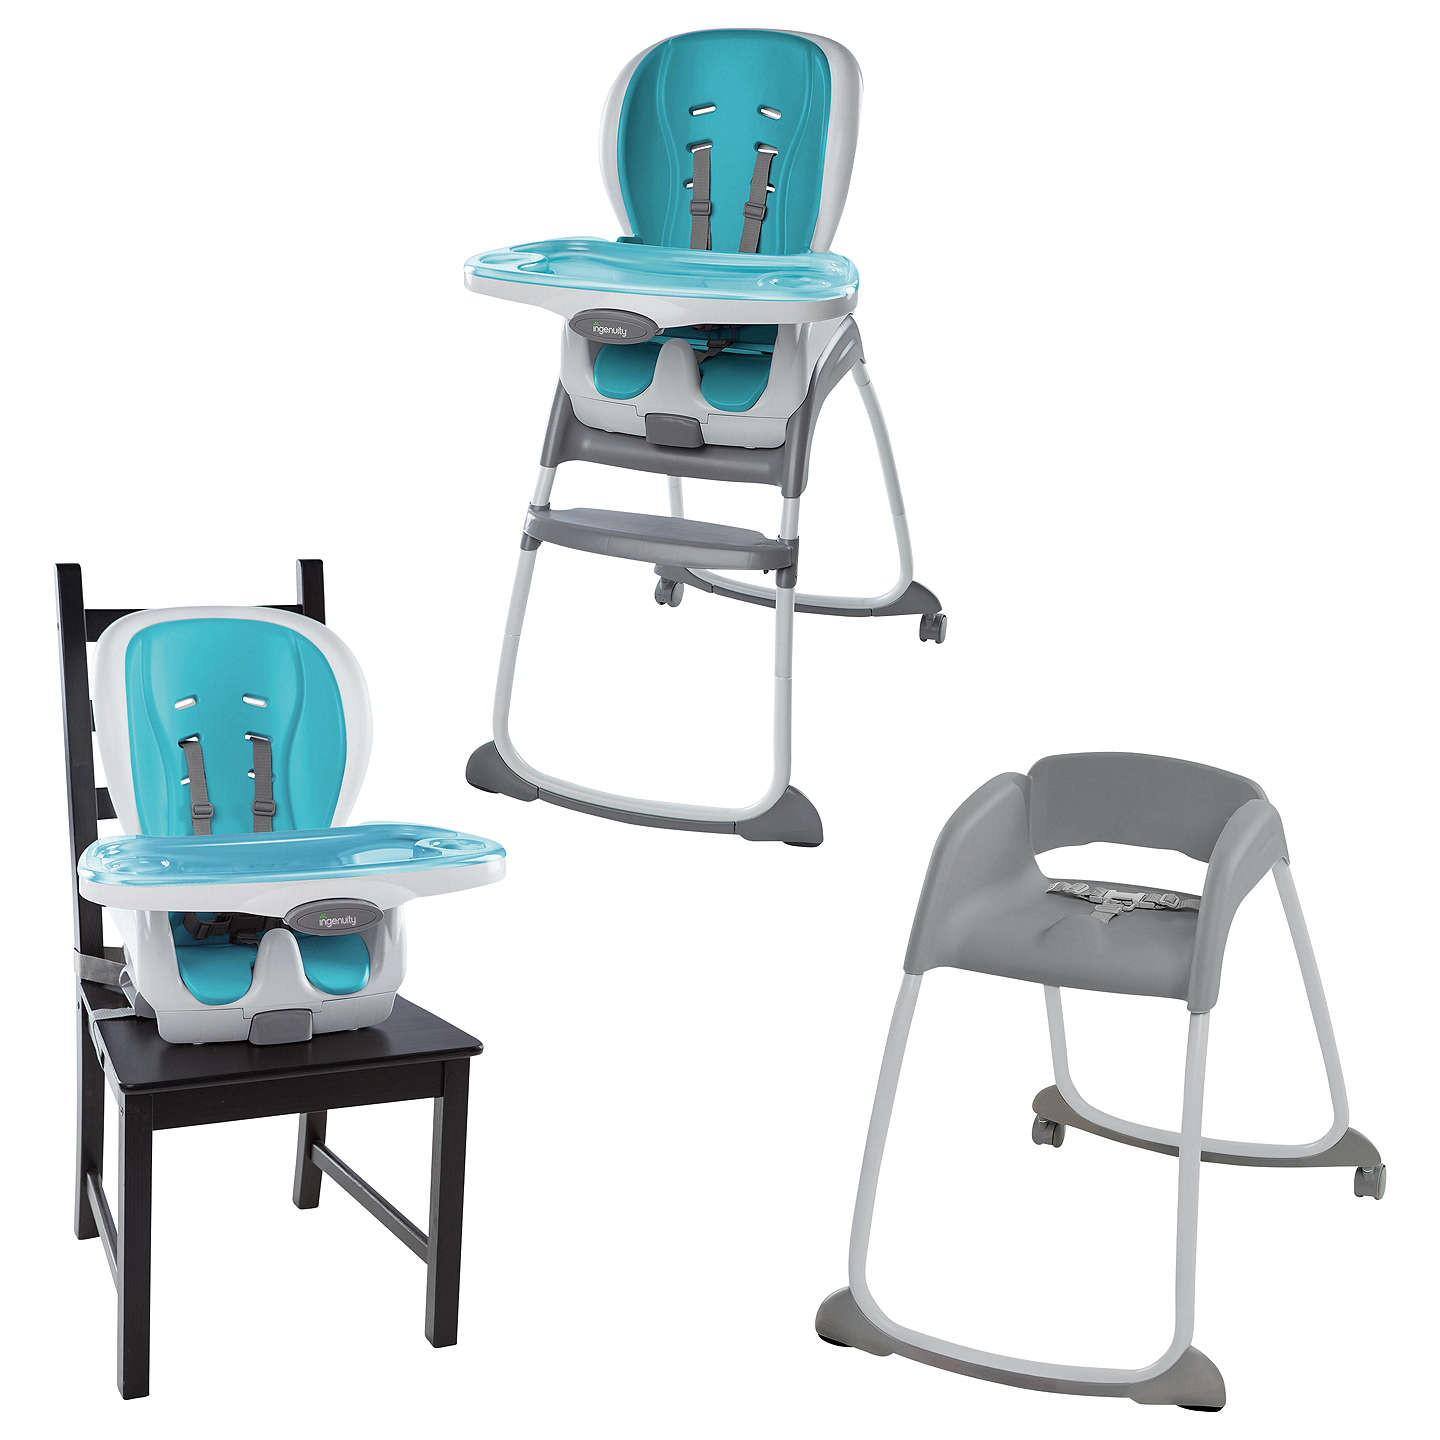 i super a know still also how monday it be well using ingenuity mommy trio review chair although handy work t in smartclean are as put will so babies on img don our can high